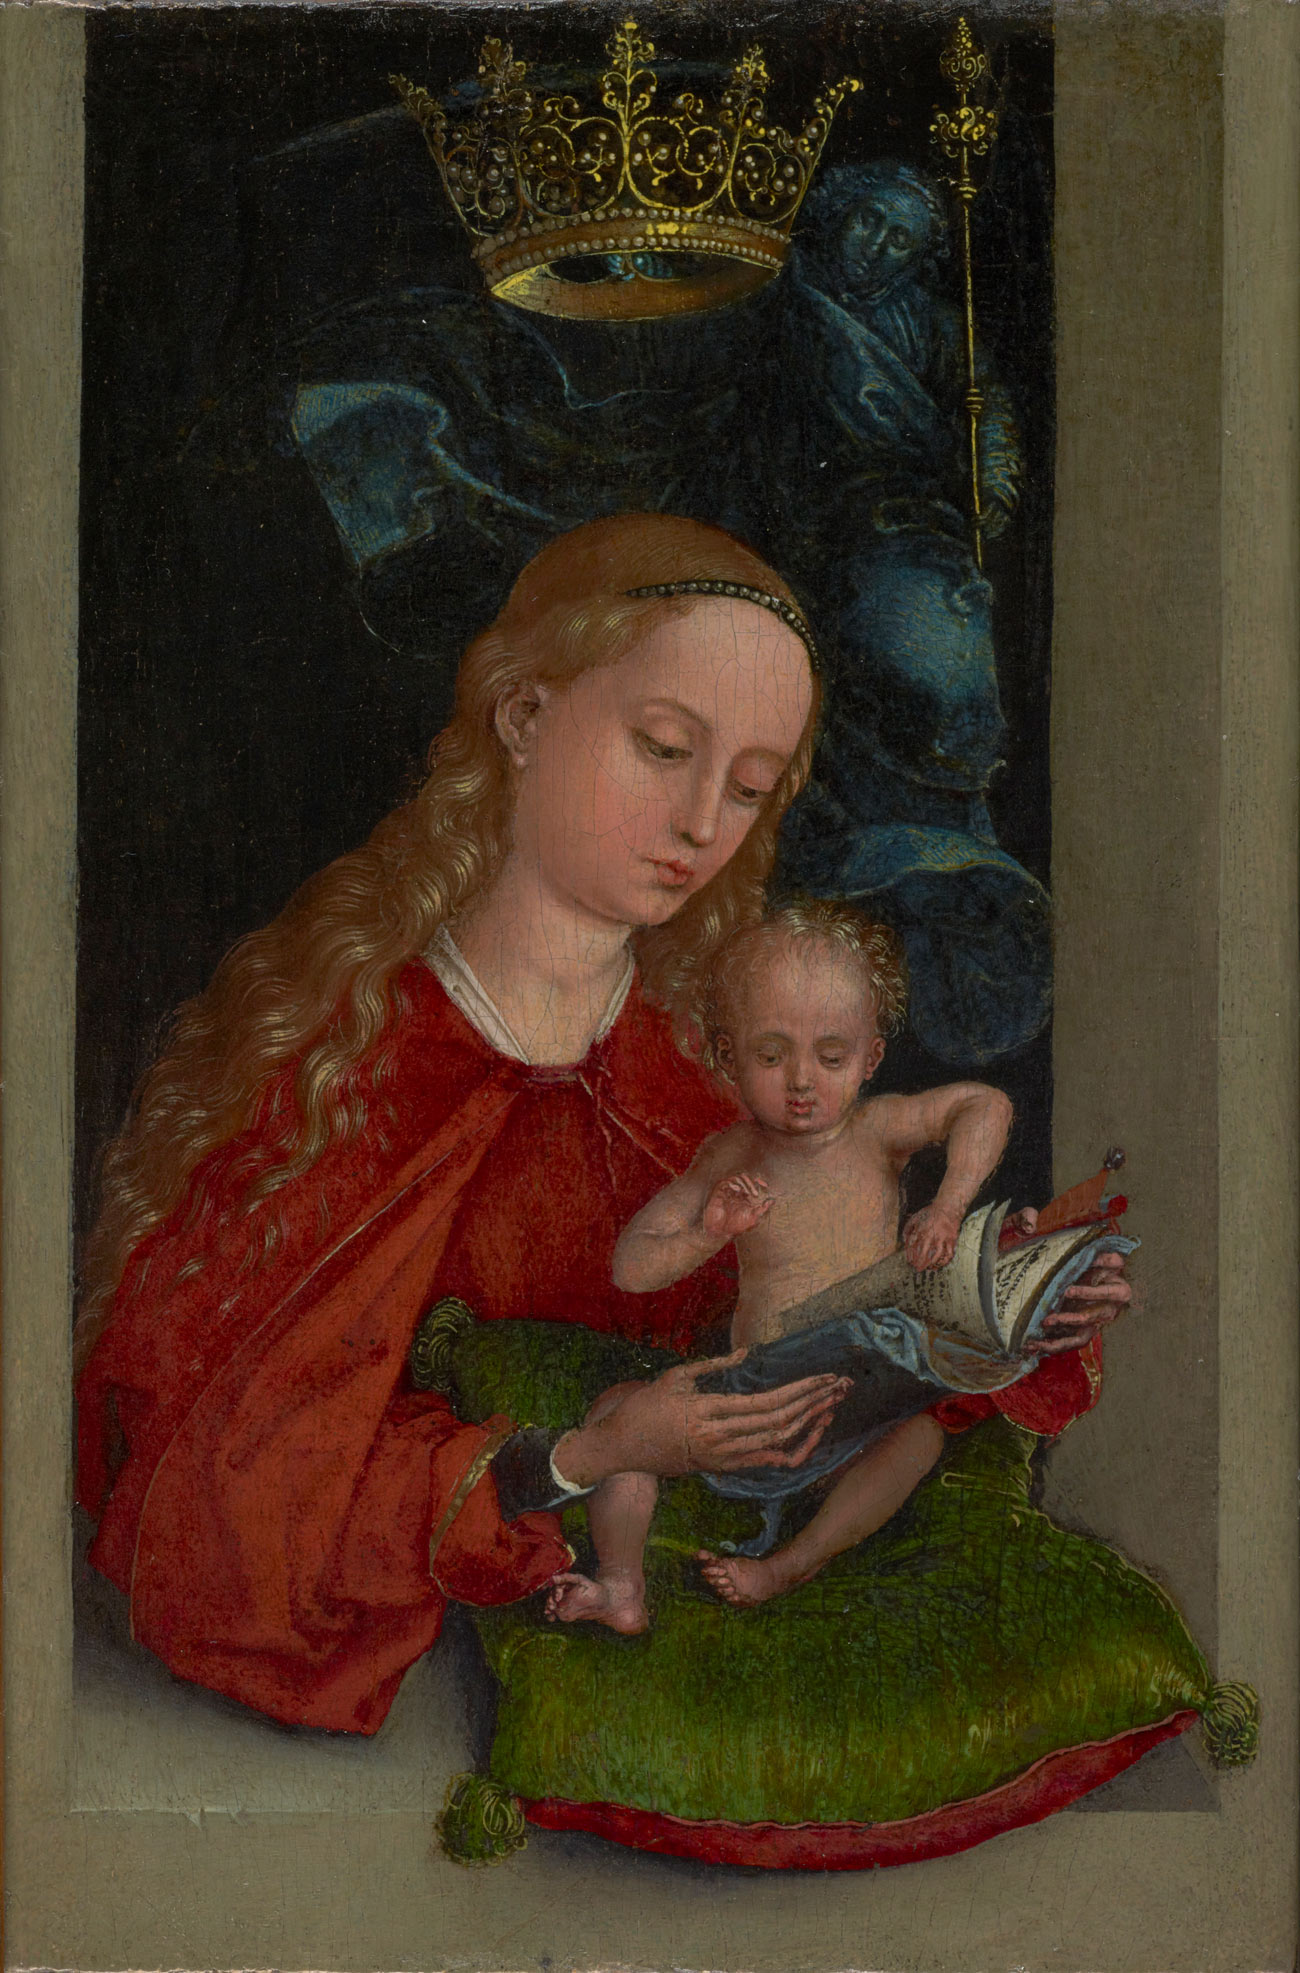 The Madonna wears read and appears to be reading to the baby Jesus, seated on a green pillow. A crown floats above.